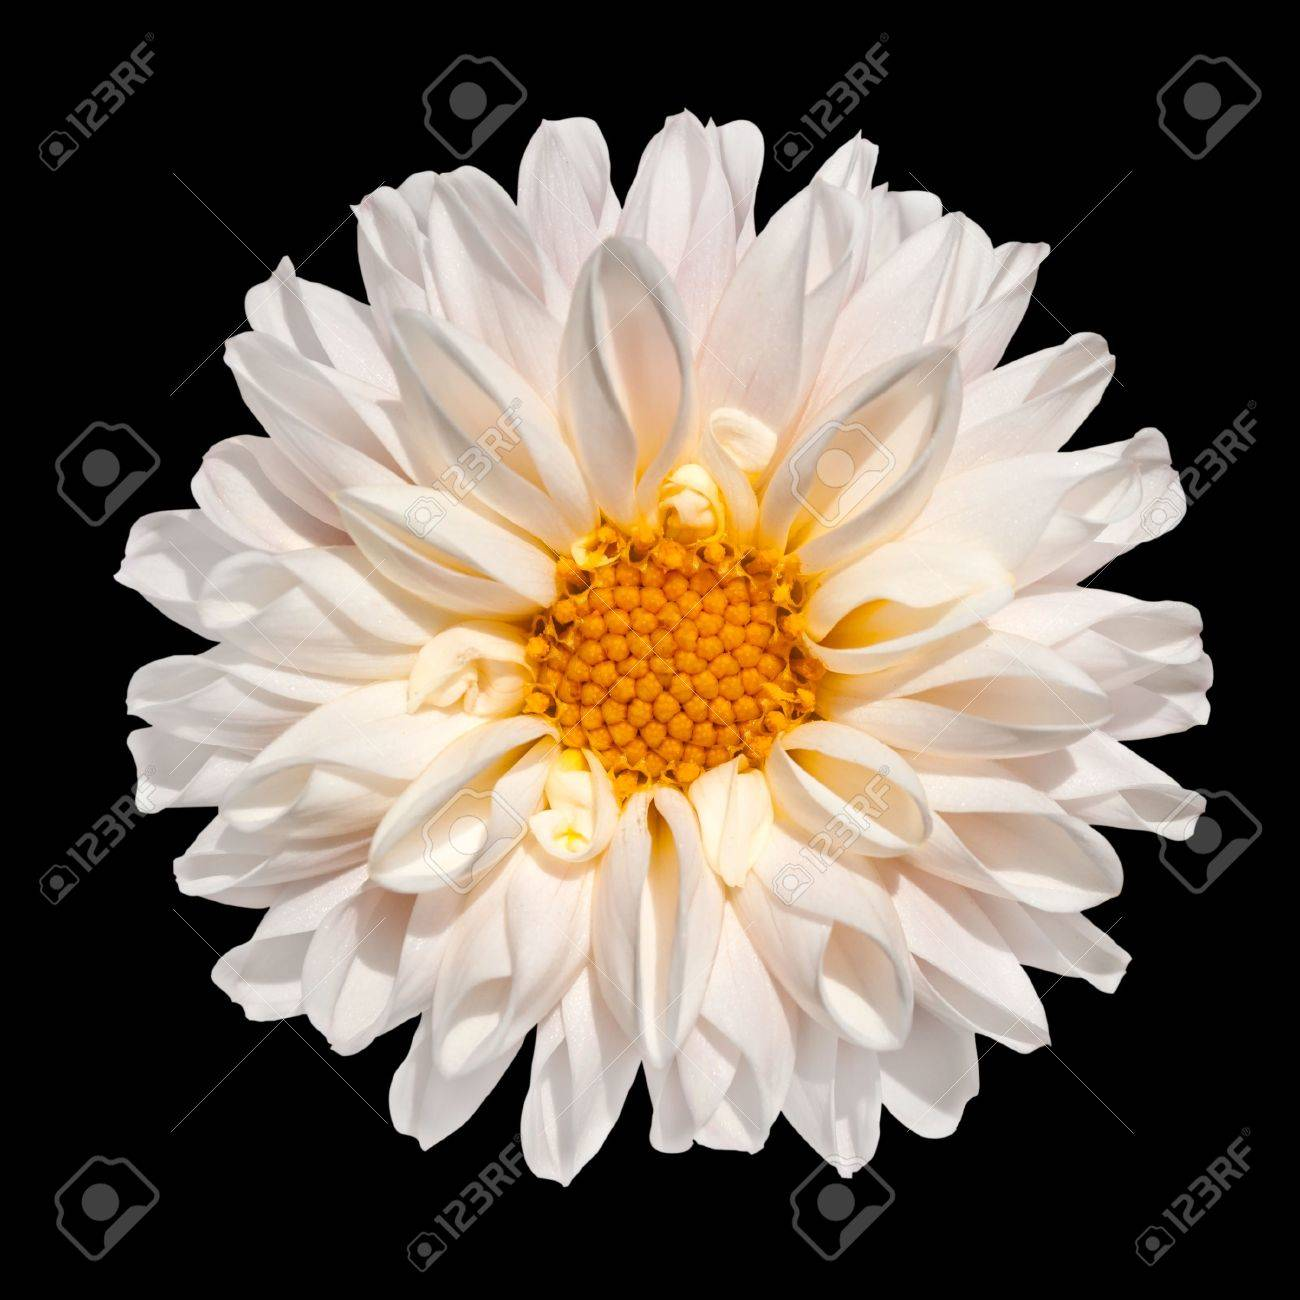 Beautiful White Dahlia Flower With Yellow Center Isolated On Stock